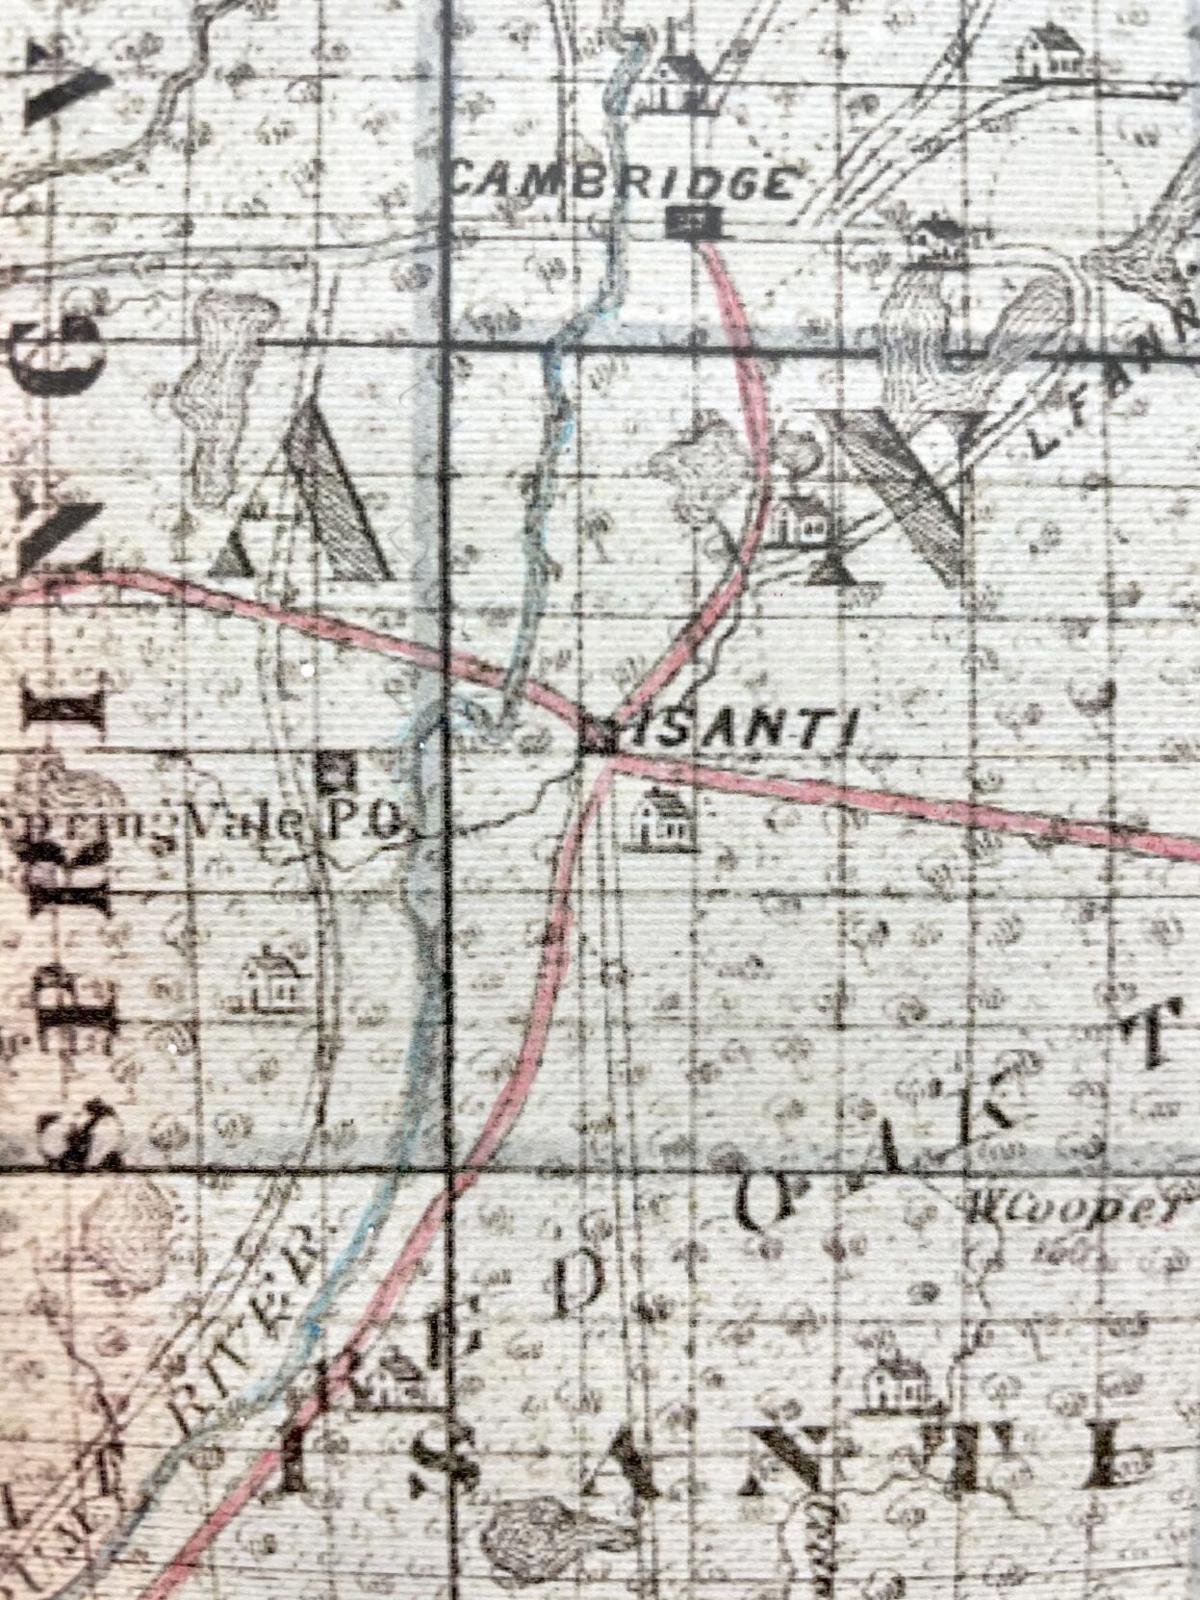 Repeating History: Highway 65 has significant historical origins